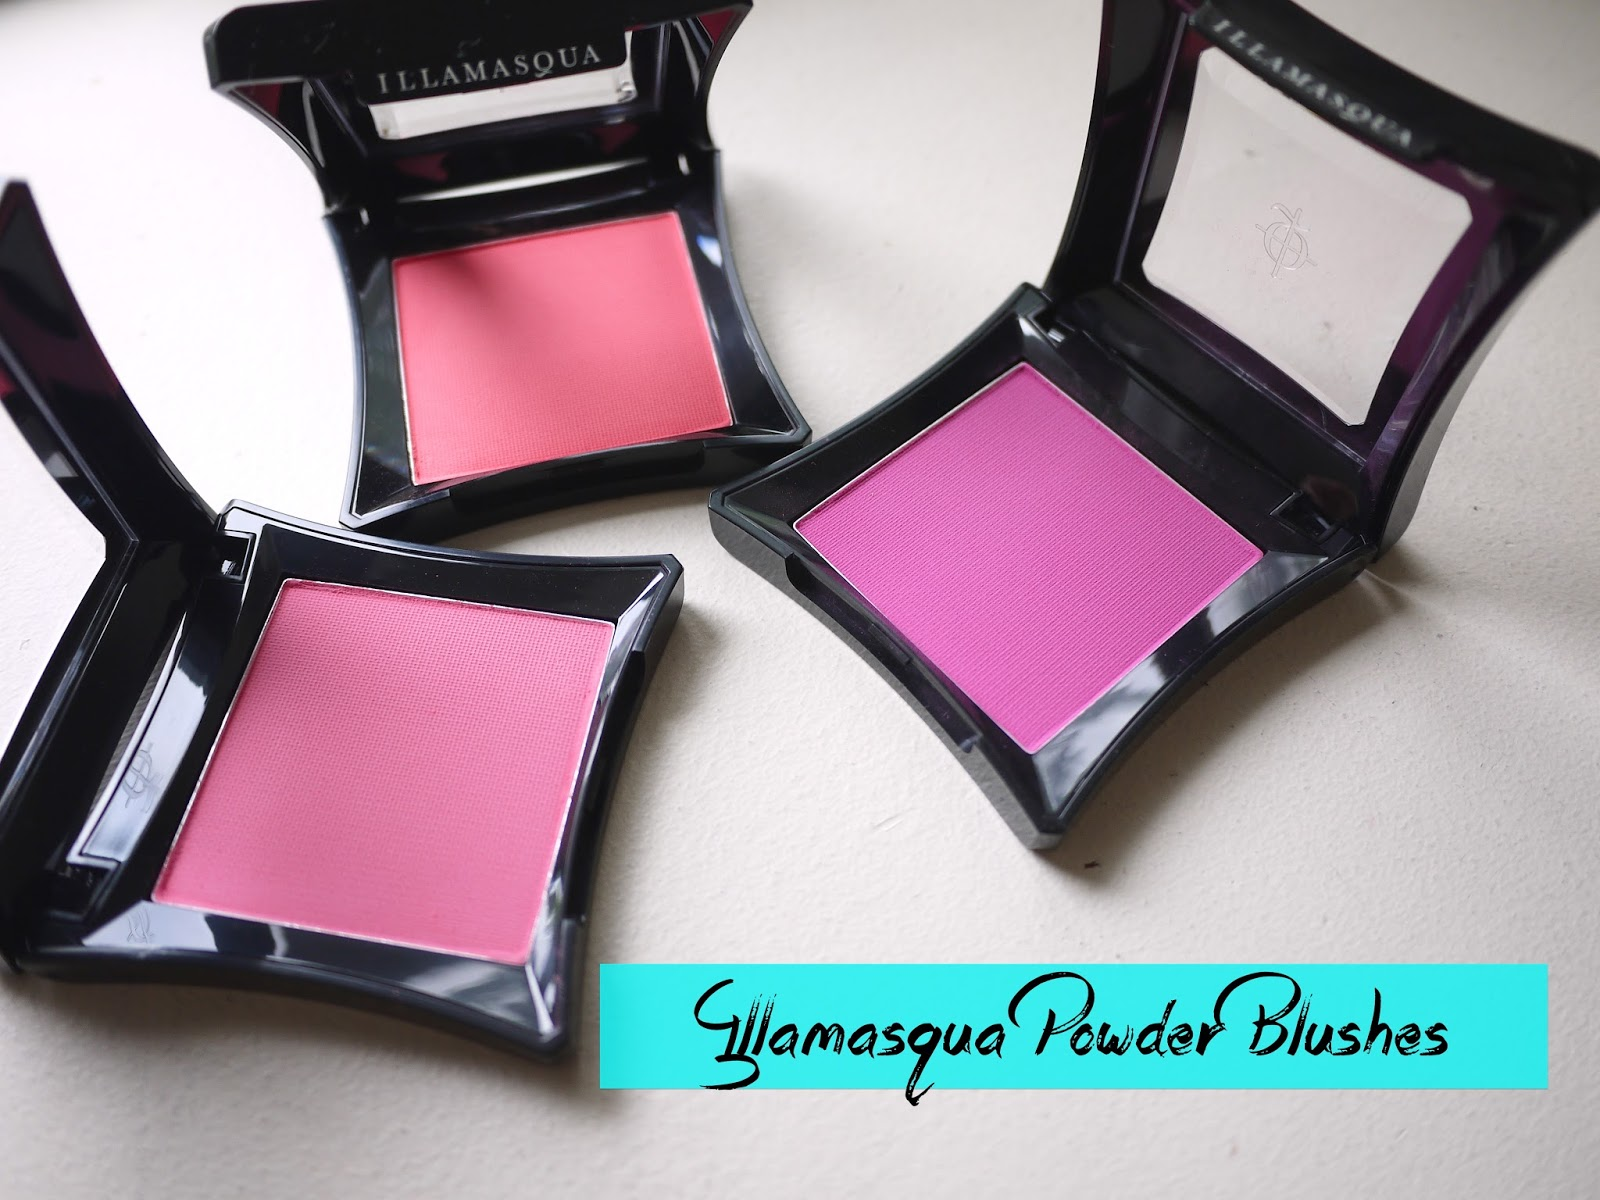 illamasqua powder blushes hussy trust chased swatch review